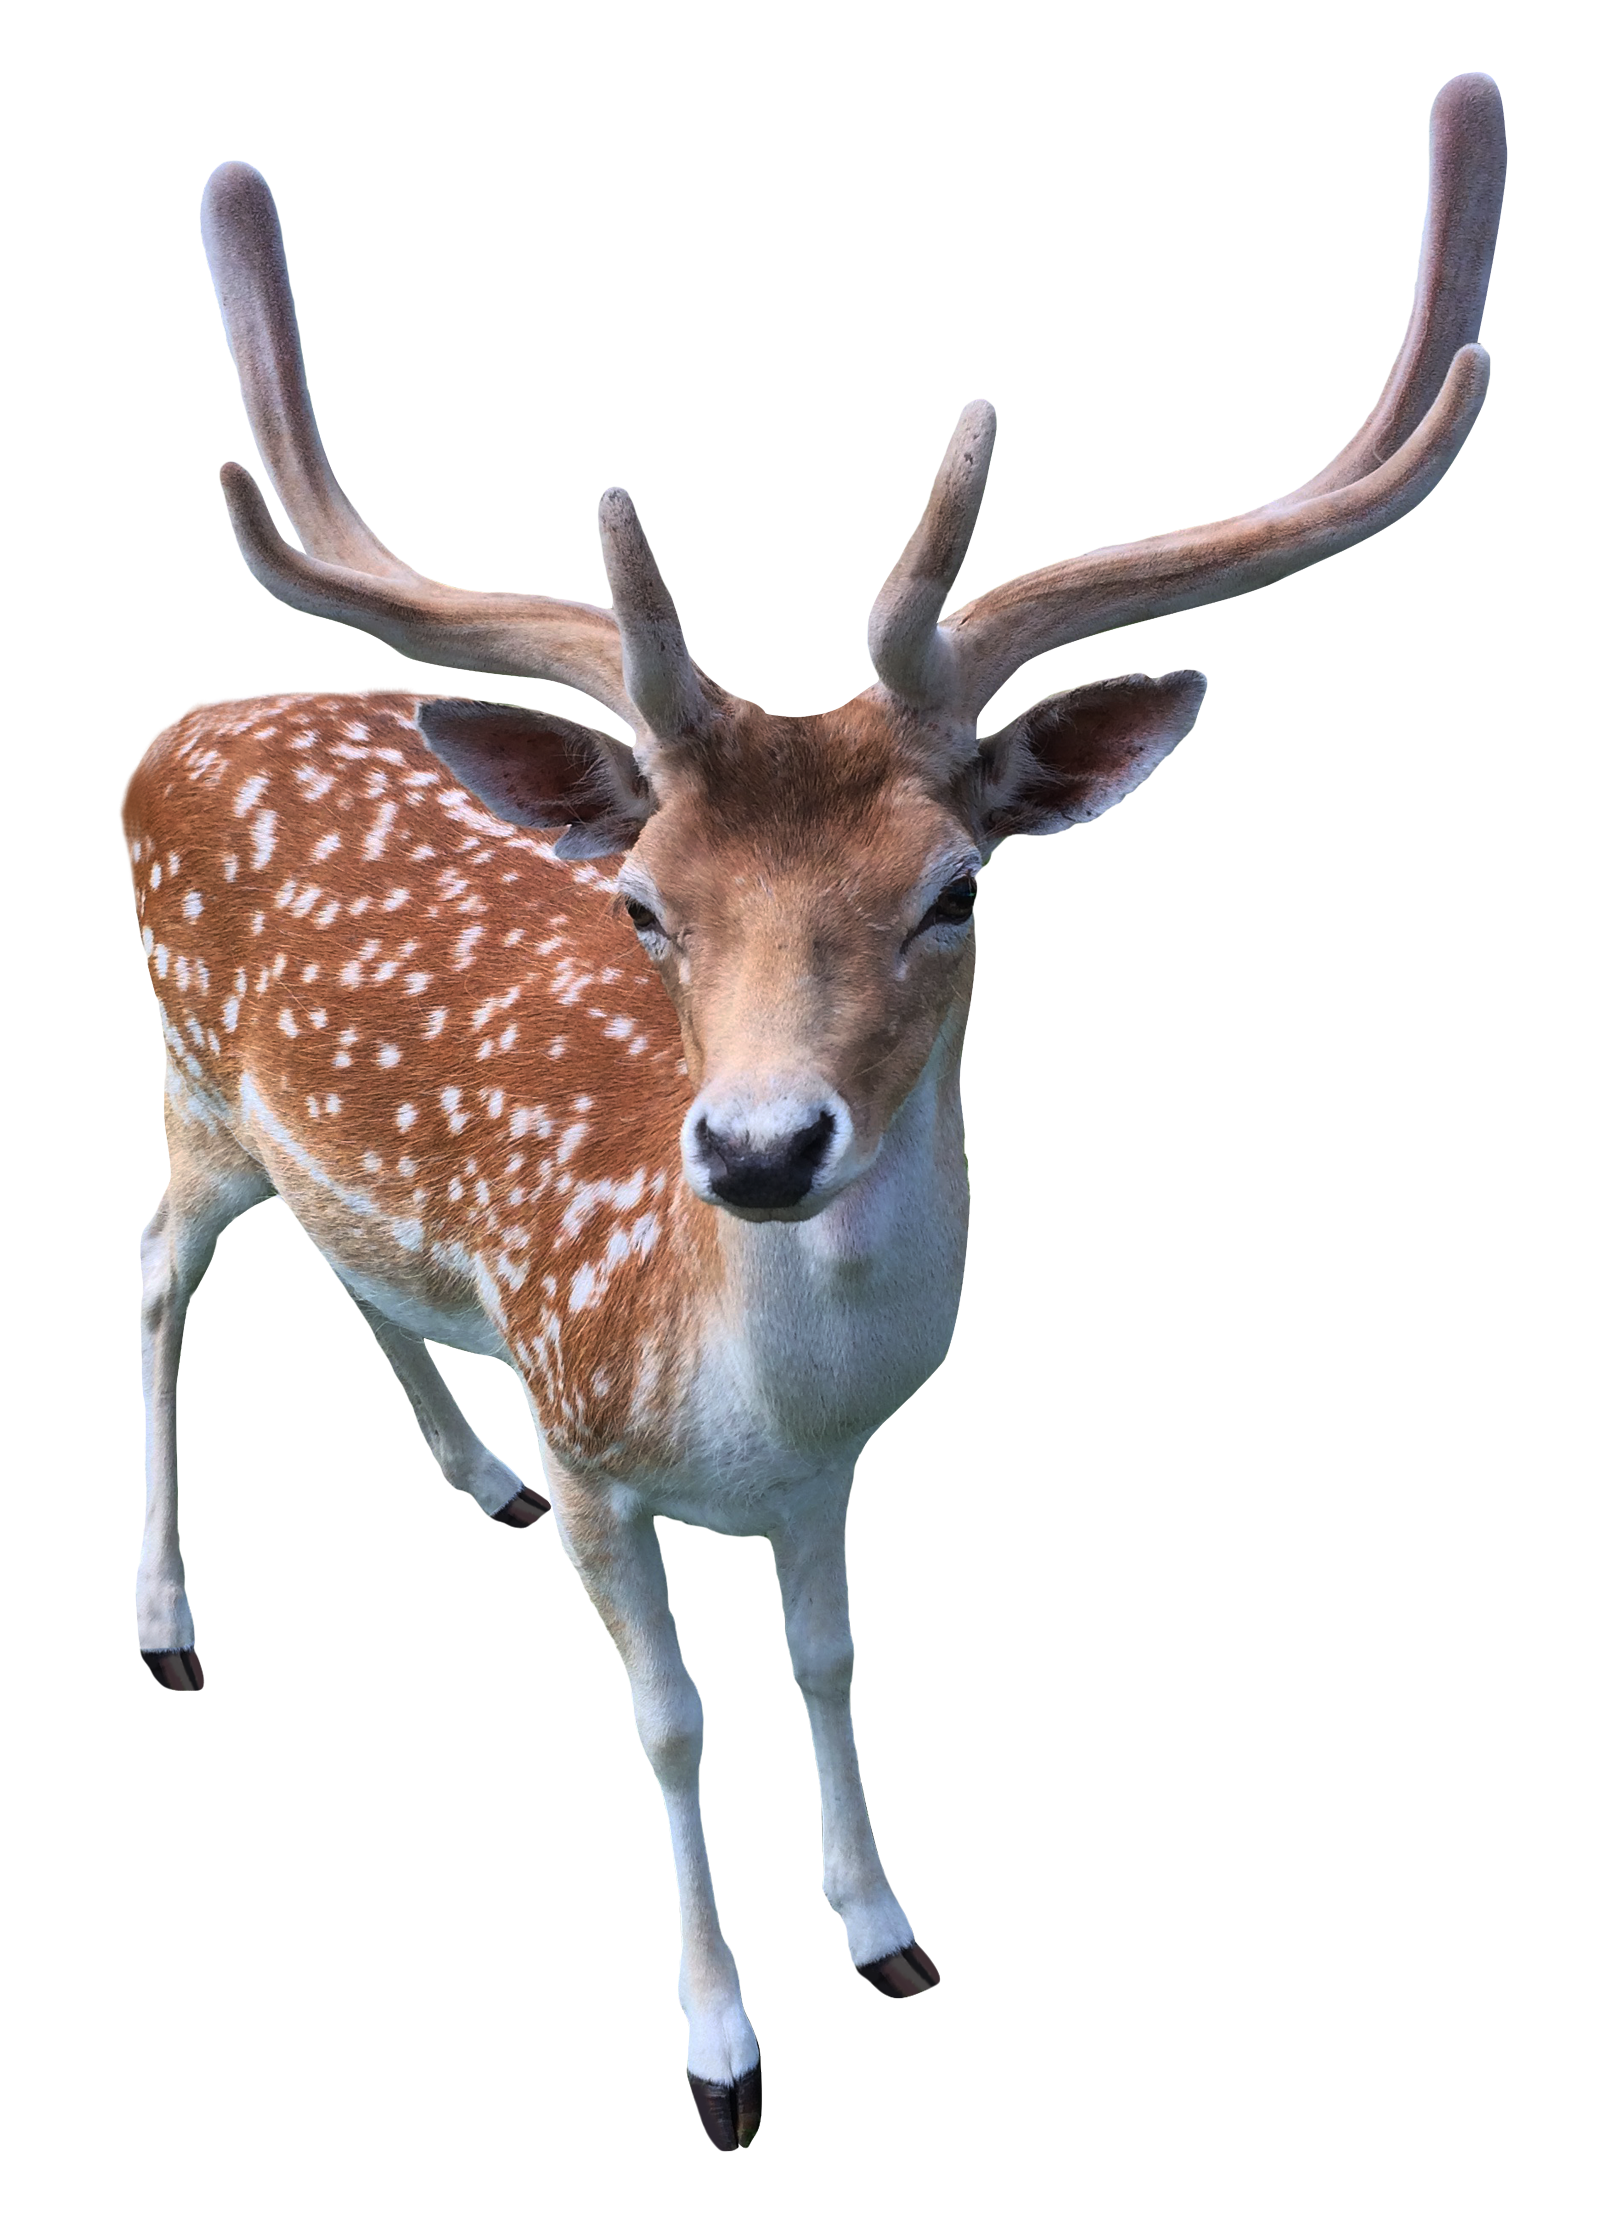 deer png transparent image pngpix #22291